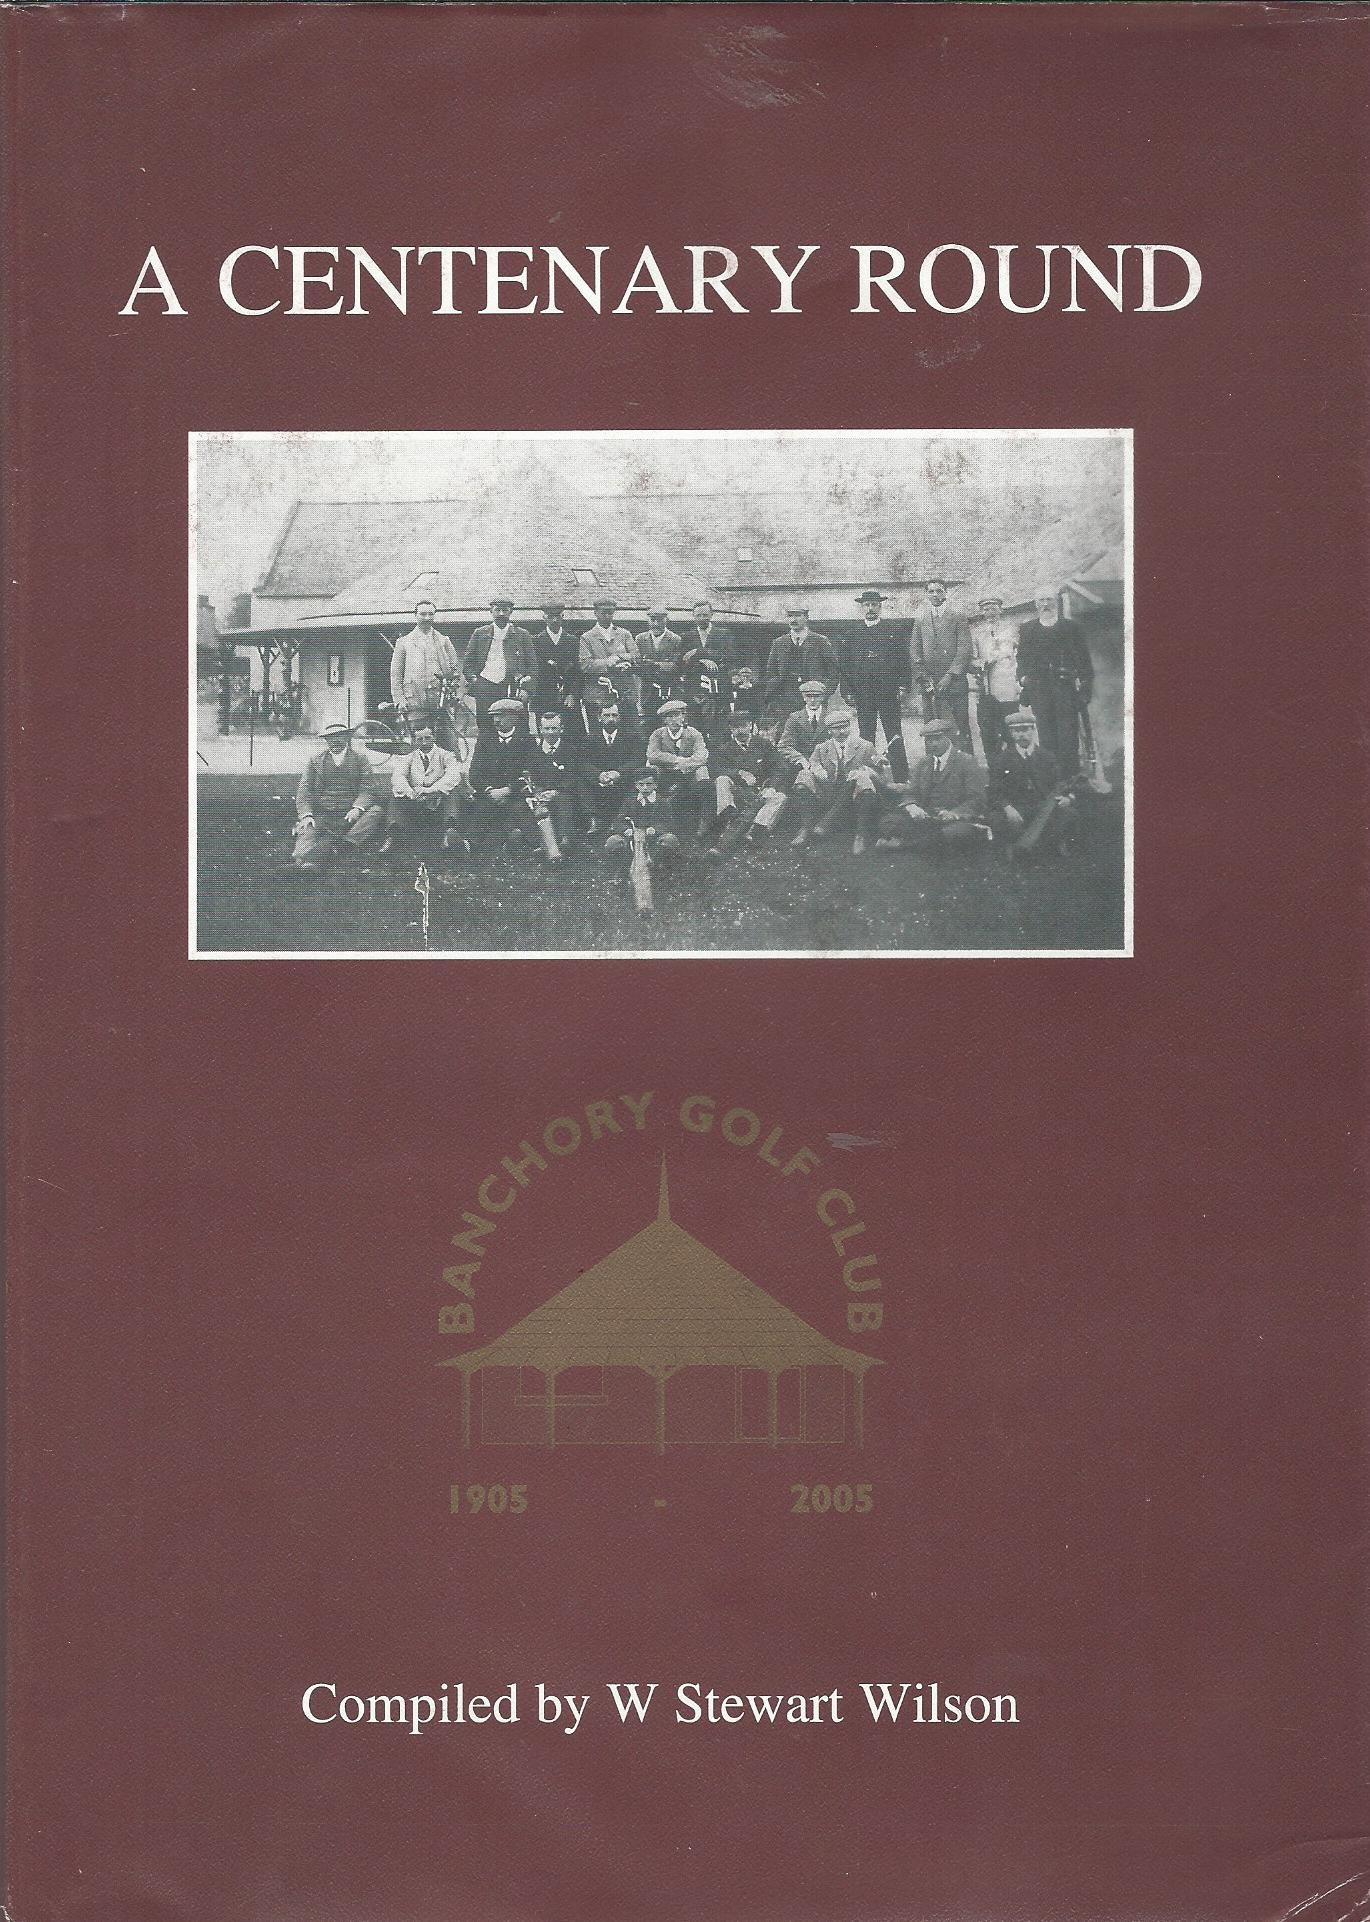 Image for A Centenary Round: Banchory Golf Club 1905-2005.